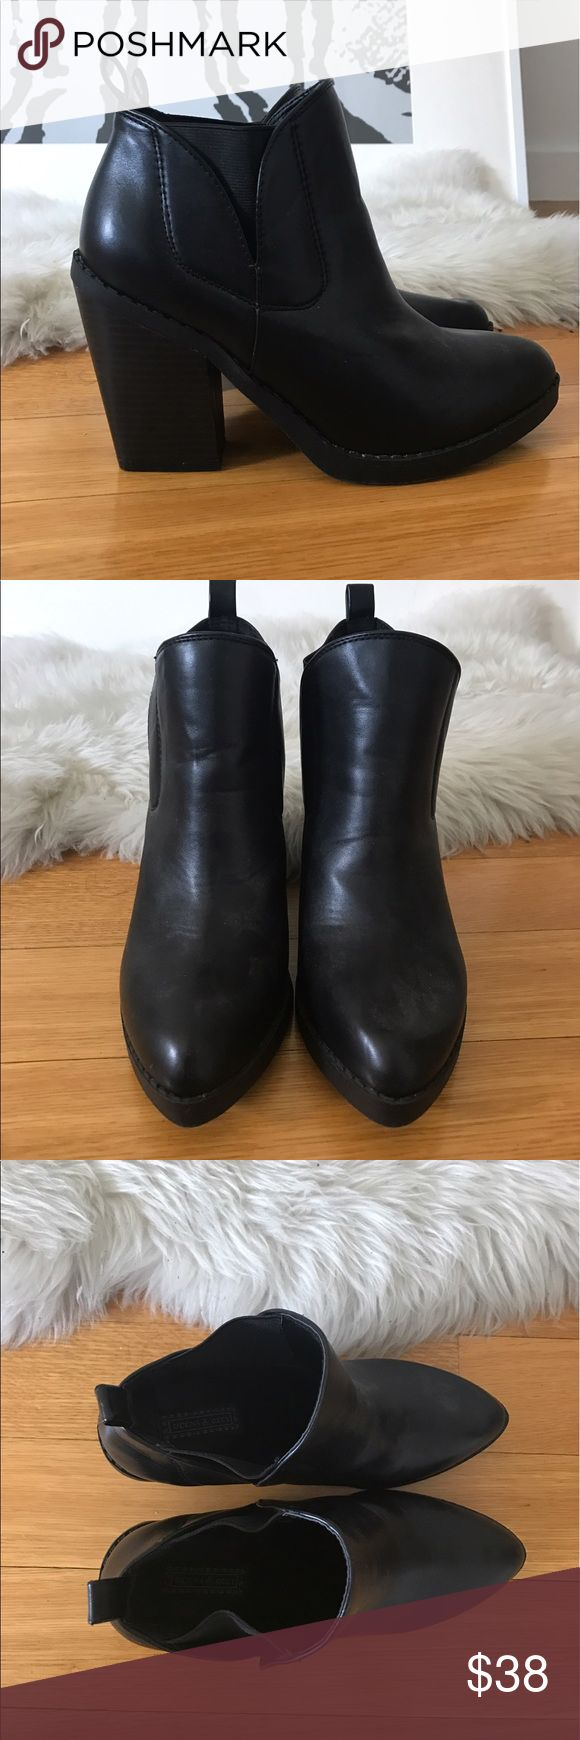 Black Leather Heeled Ankle Boots Black faux leather ankle boots from Urban Outfitters. Size 8 women's. Pointed toe with 3 inch heel. Worn once but in pretty much new condition otherwise. Urban Outfitters Shoes Ankle Boots & Booties